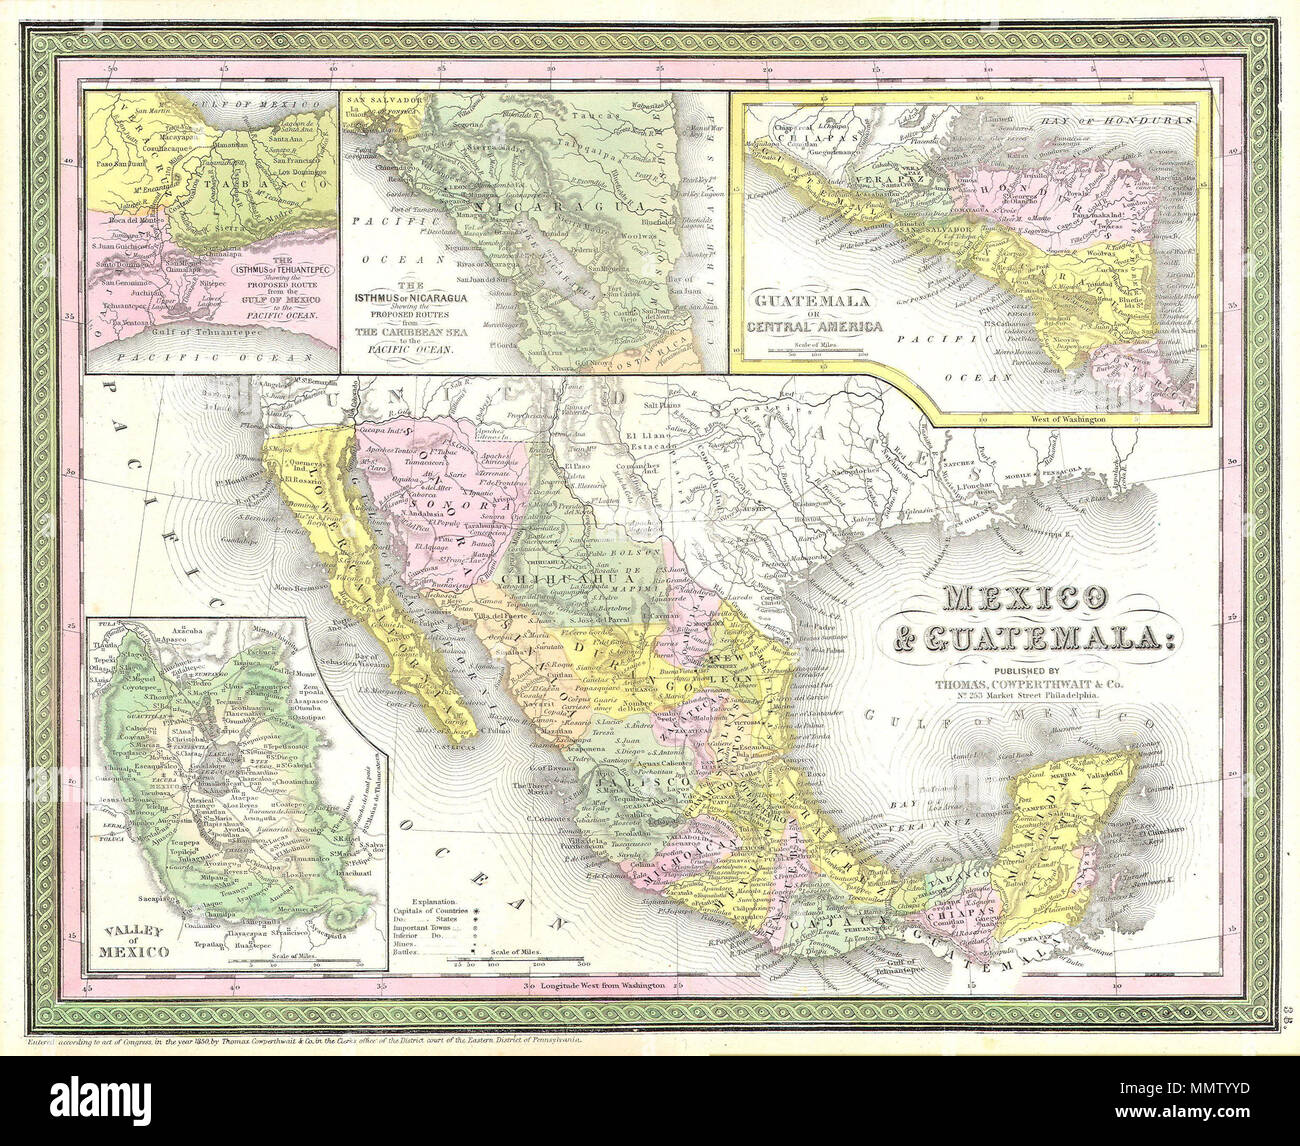 English This Scarce Hand Colored Map Is A Lithographic Engraving Of